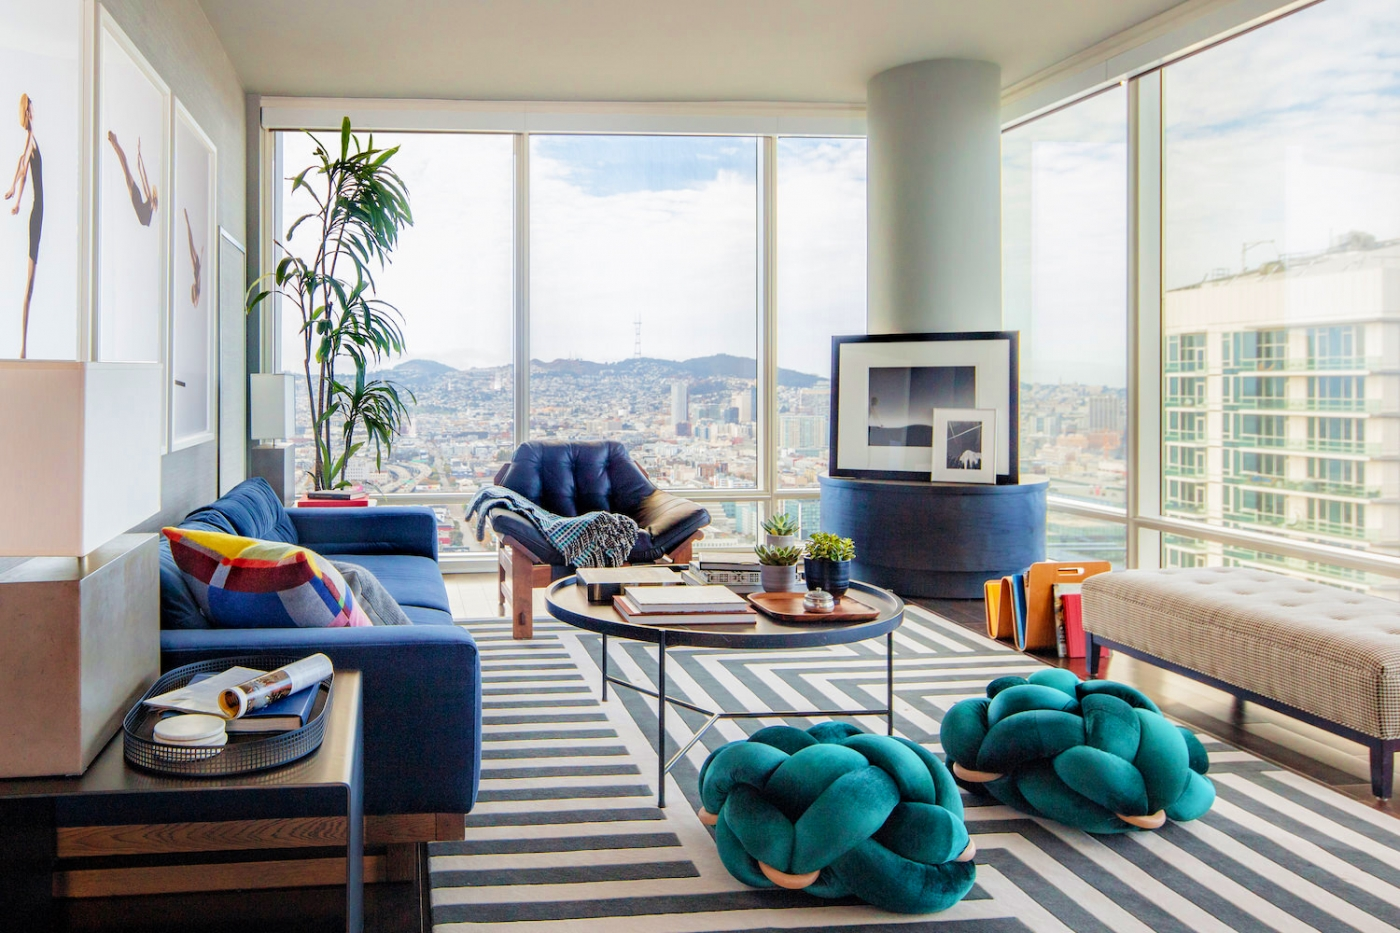 top interior designers Design Hubs Of The World – 20 Top Interior Designers From San Francisco Design Hubs Of The World     20 Top Interior Designers From San Francisco feature image 1400x933